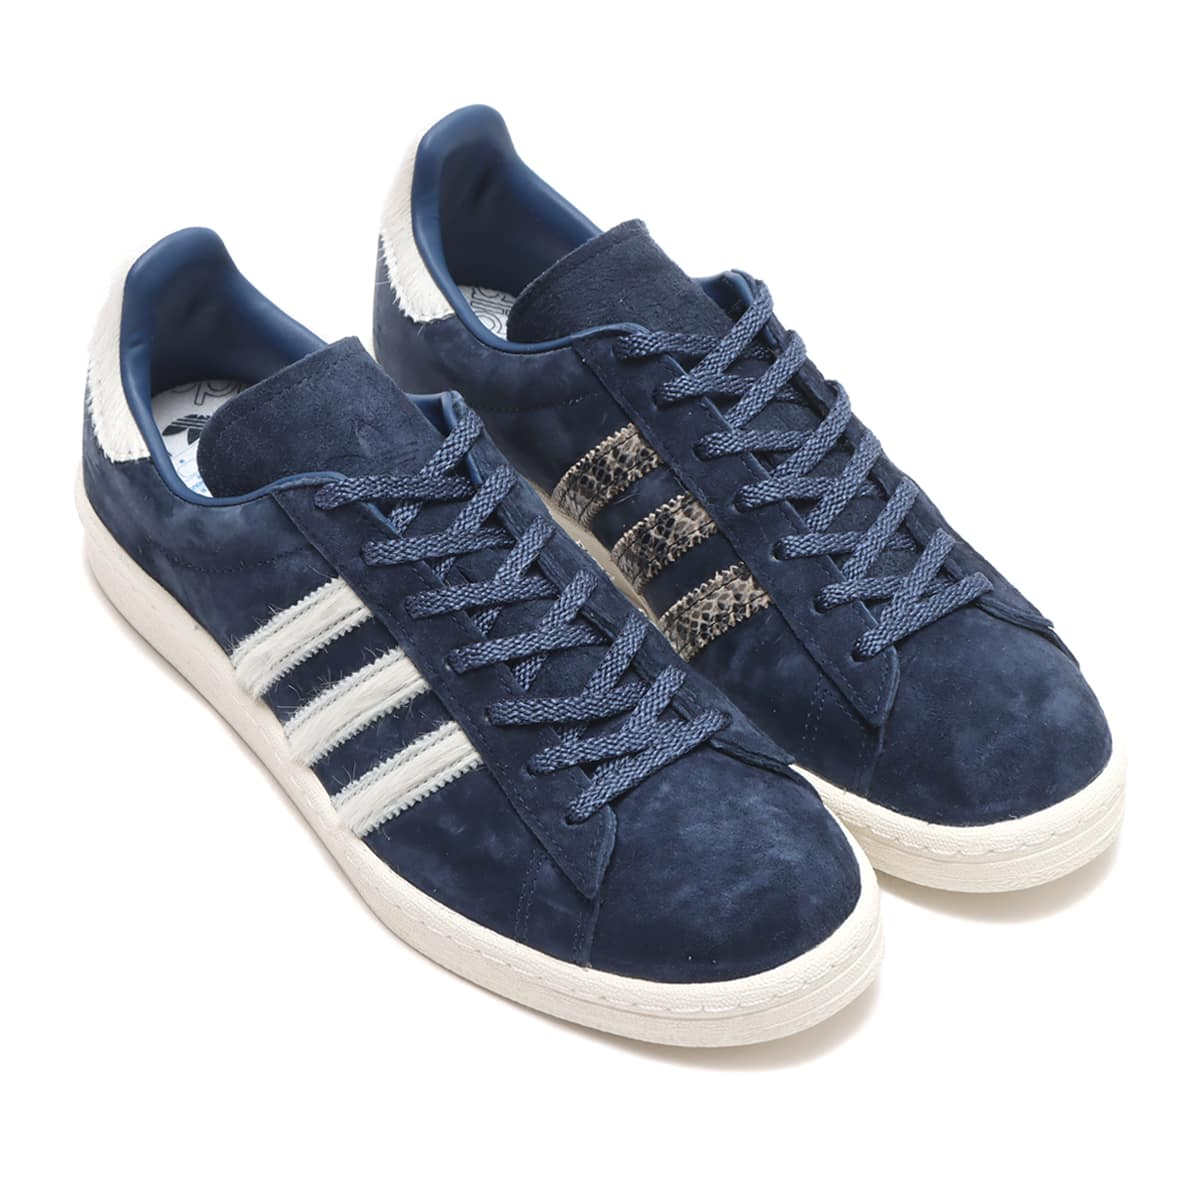 adidas CAMPUS 80s CALLEGE NAVY/FOOTWEAR WHITE/BLUE 21SS-I_photo_large